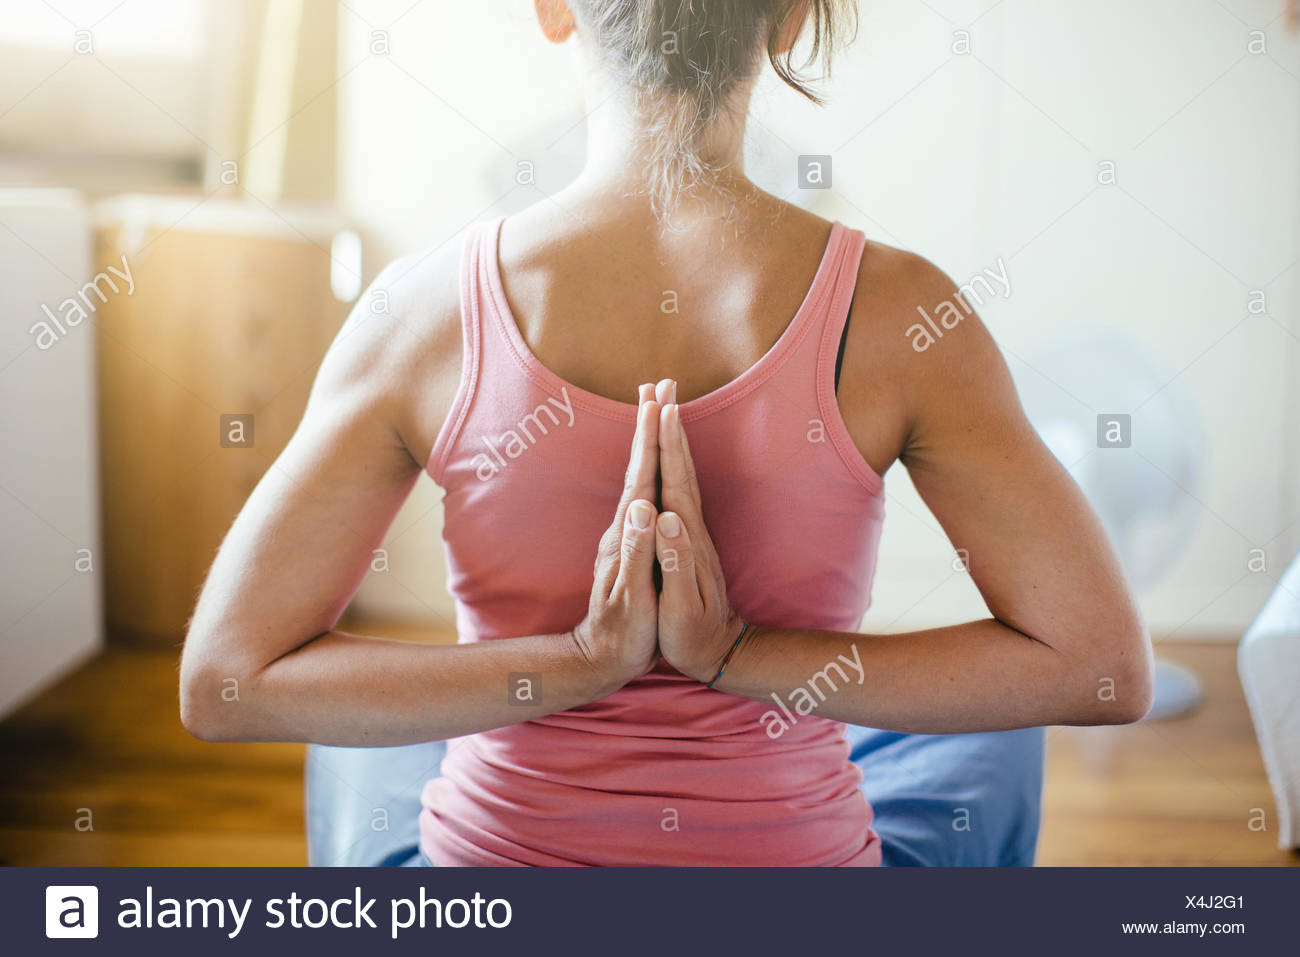 Rear view of mid adult woman in yoga position on bedroom floor - Stock Image